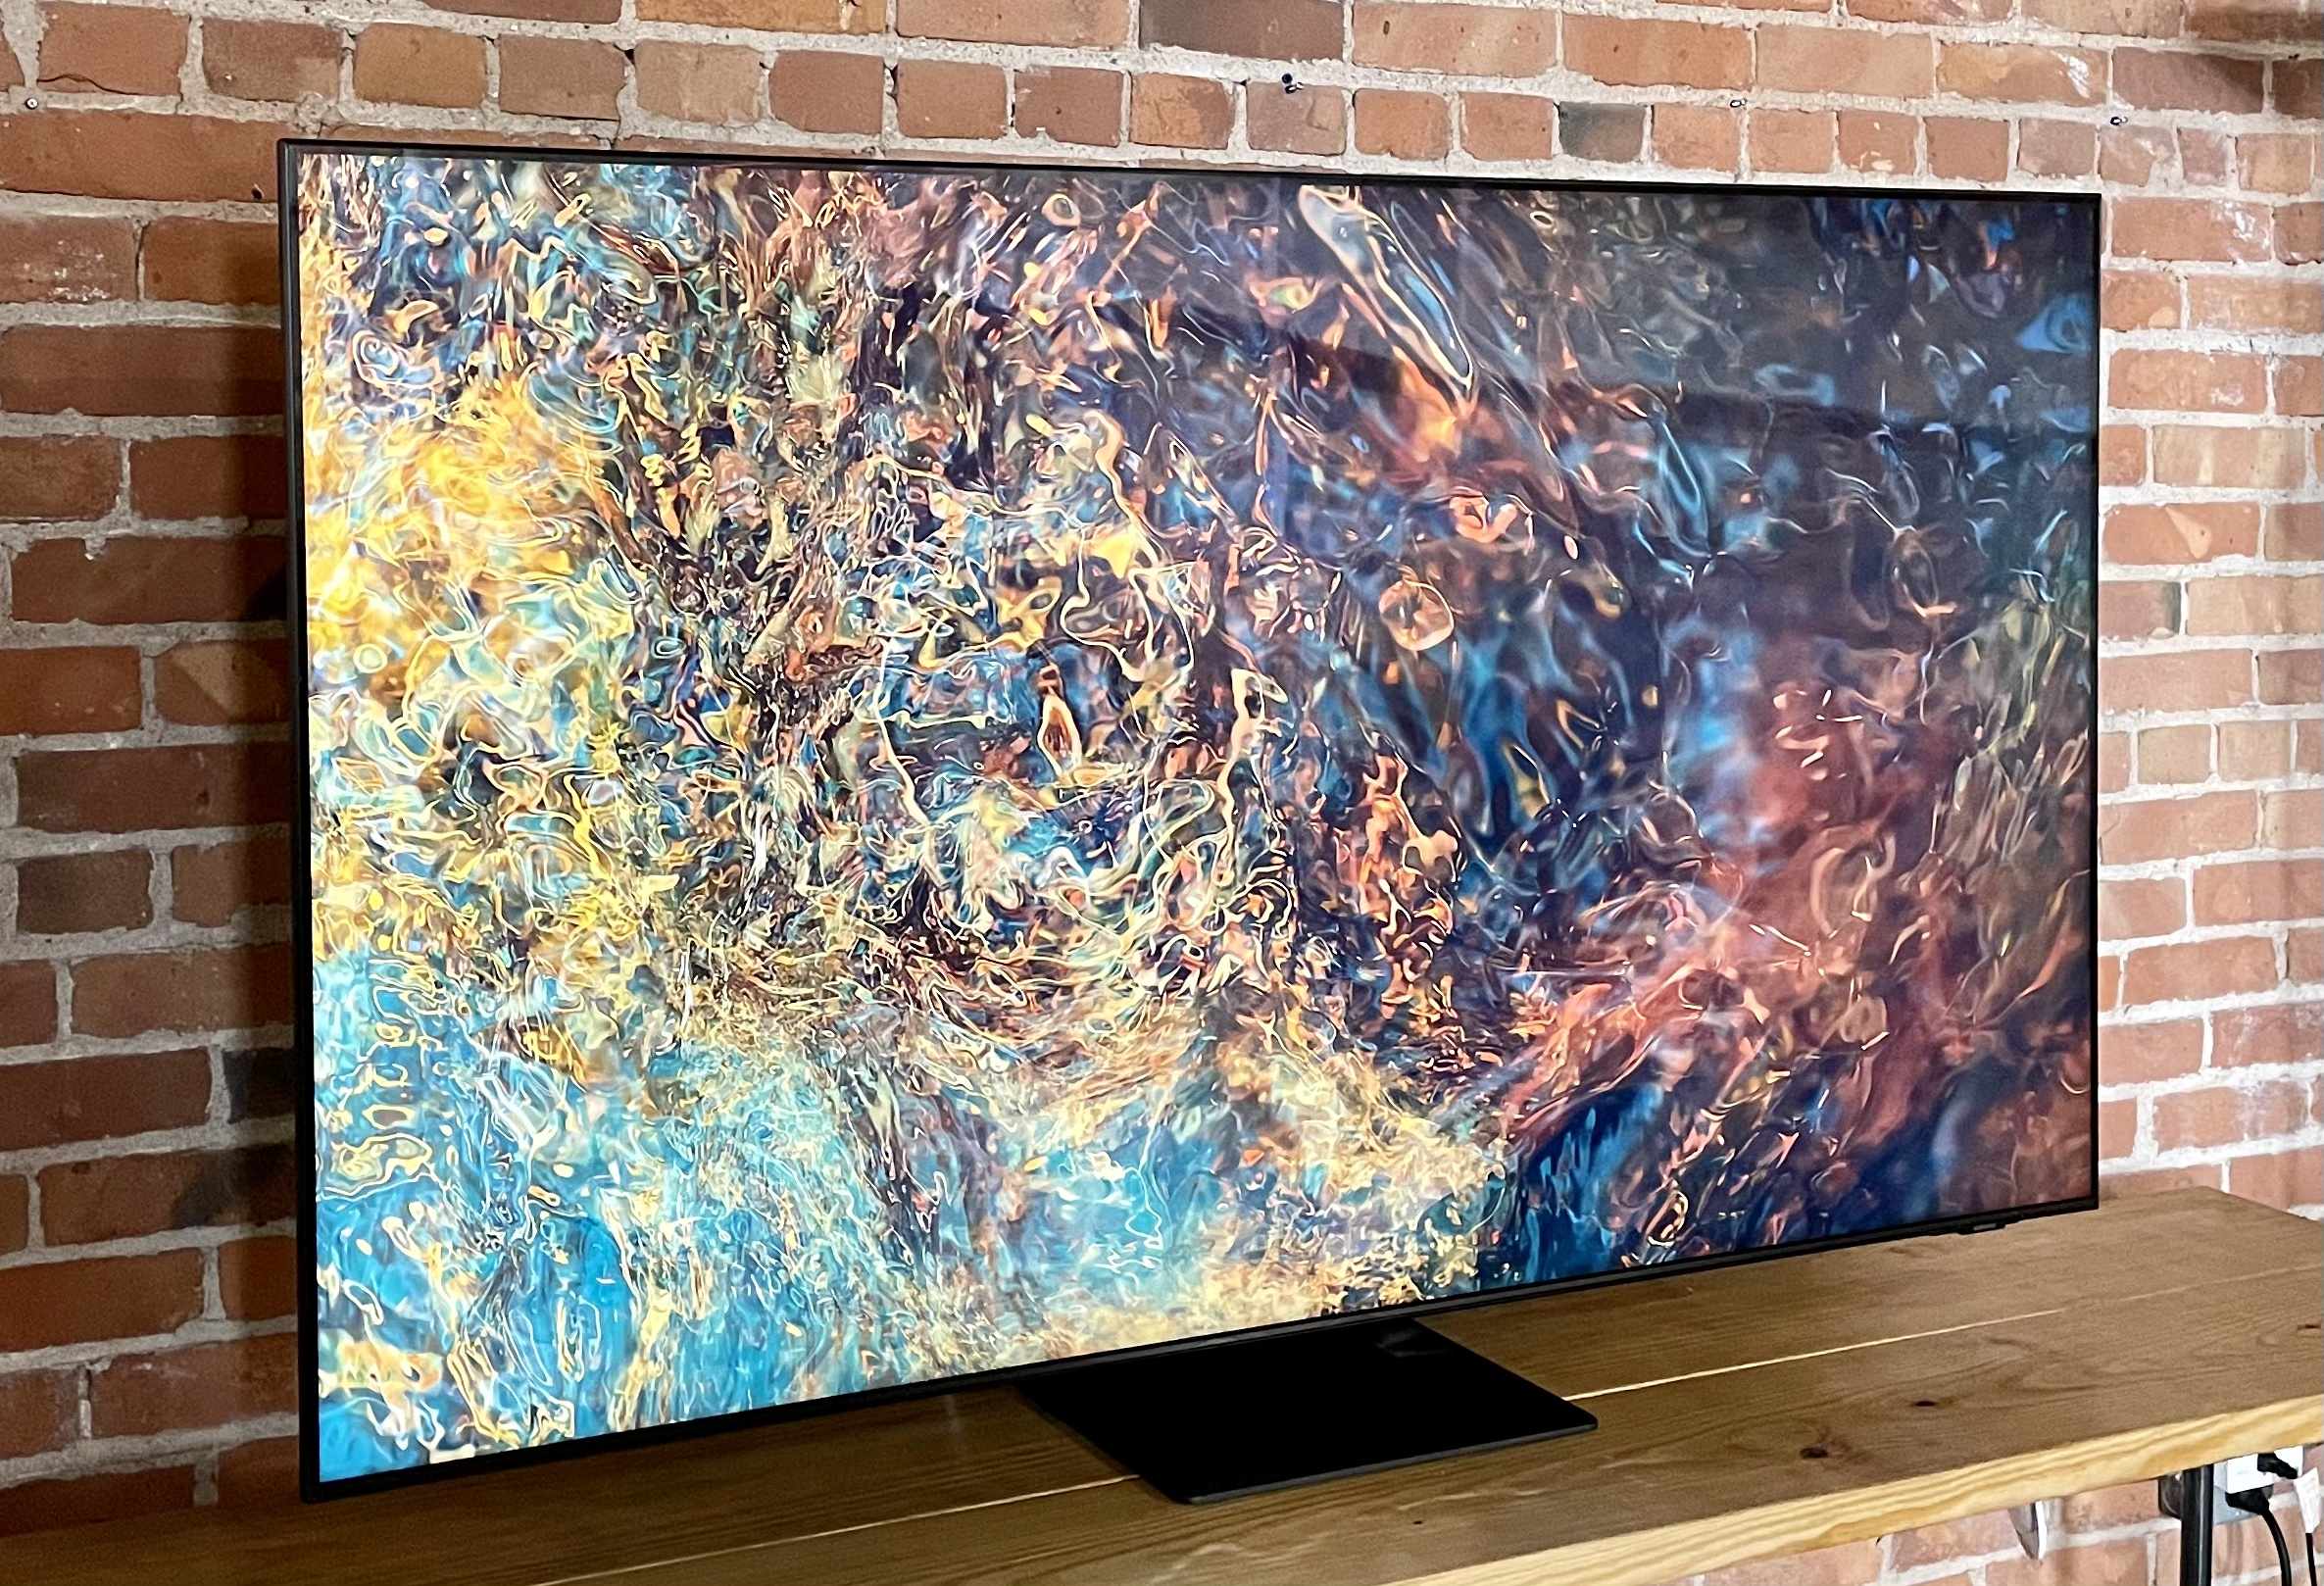 Samsung Q90A Review 2021 NEO QLED